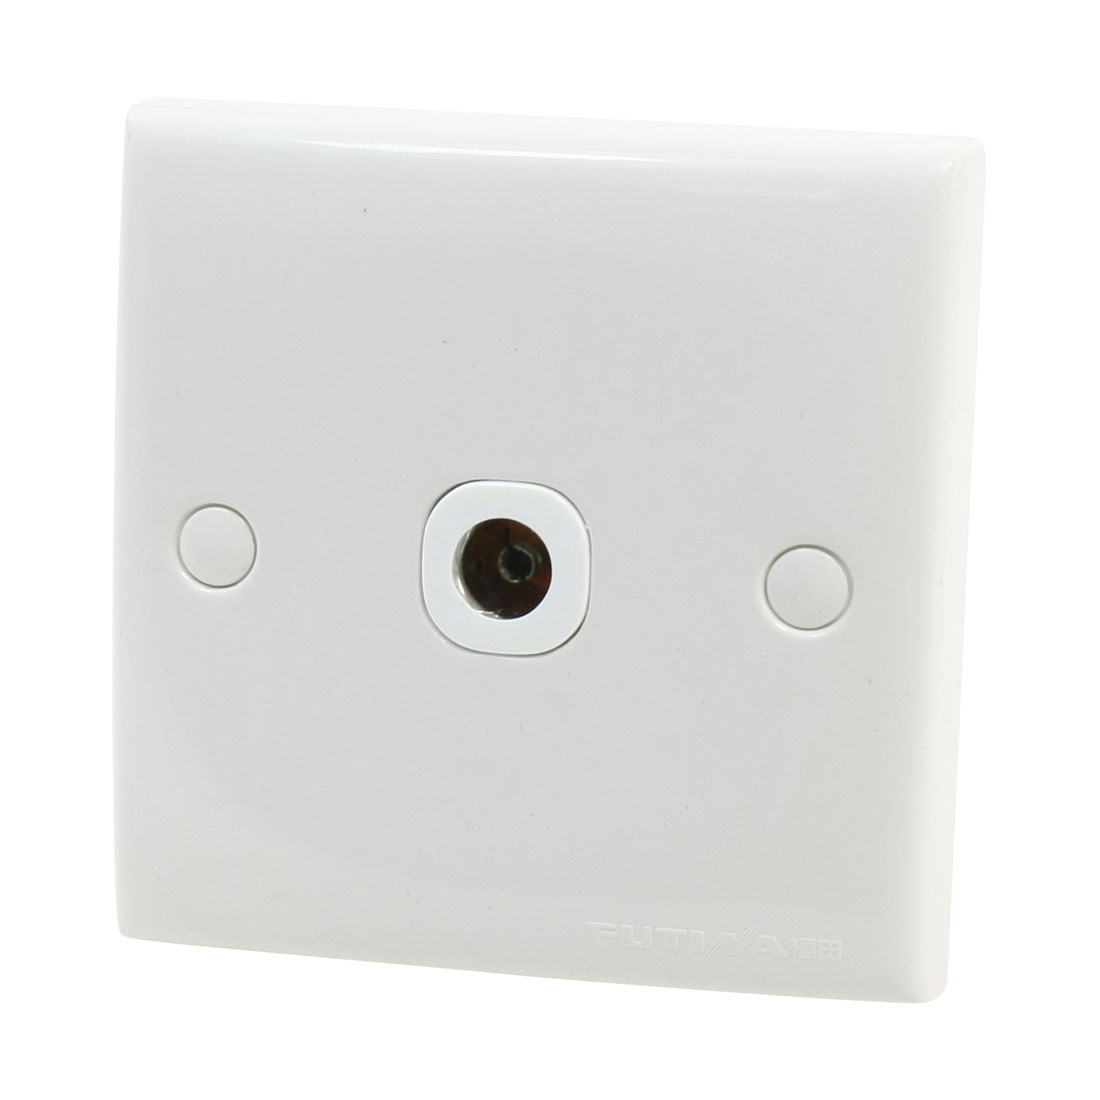 Bedroom PAL TV Television Aerial Socket One Outlet Wall Plate Panel